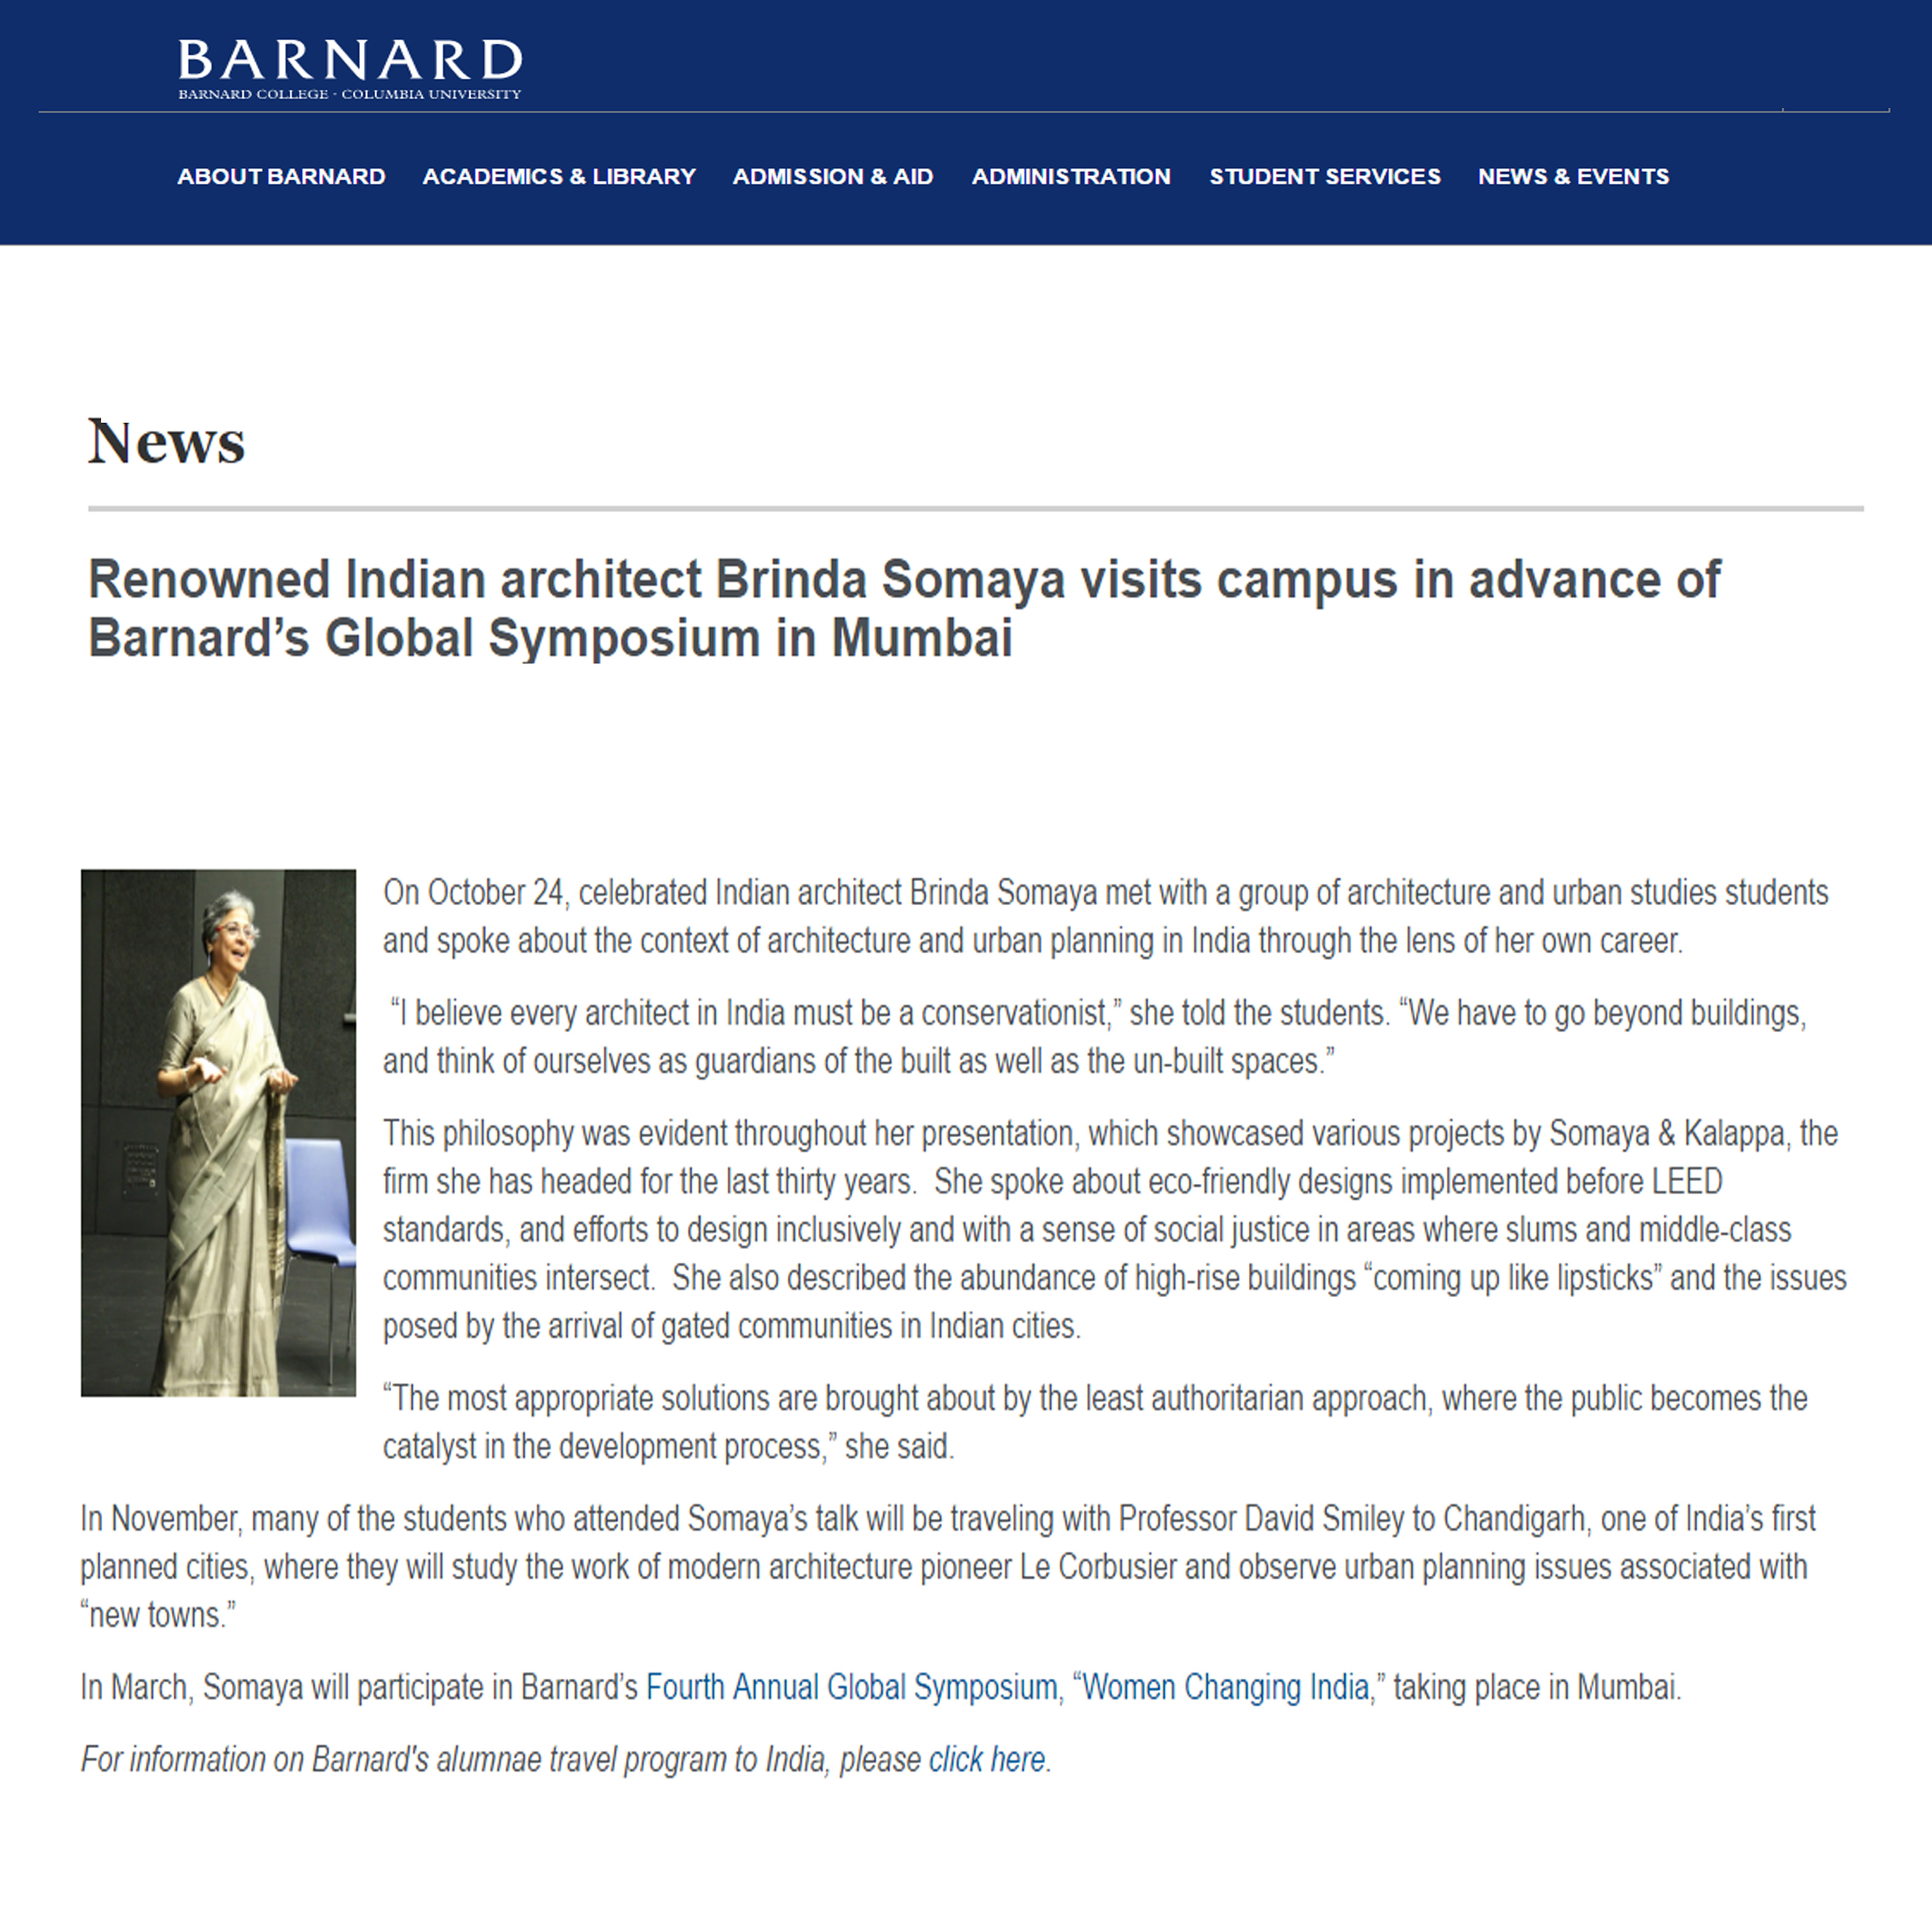 Renowned Indian architect Brinda Somaya visits campus in advance of Barnard�s Global Symposium in Mumbai, Barnard, 27th October 2011